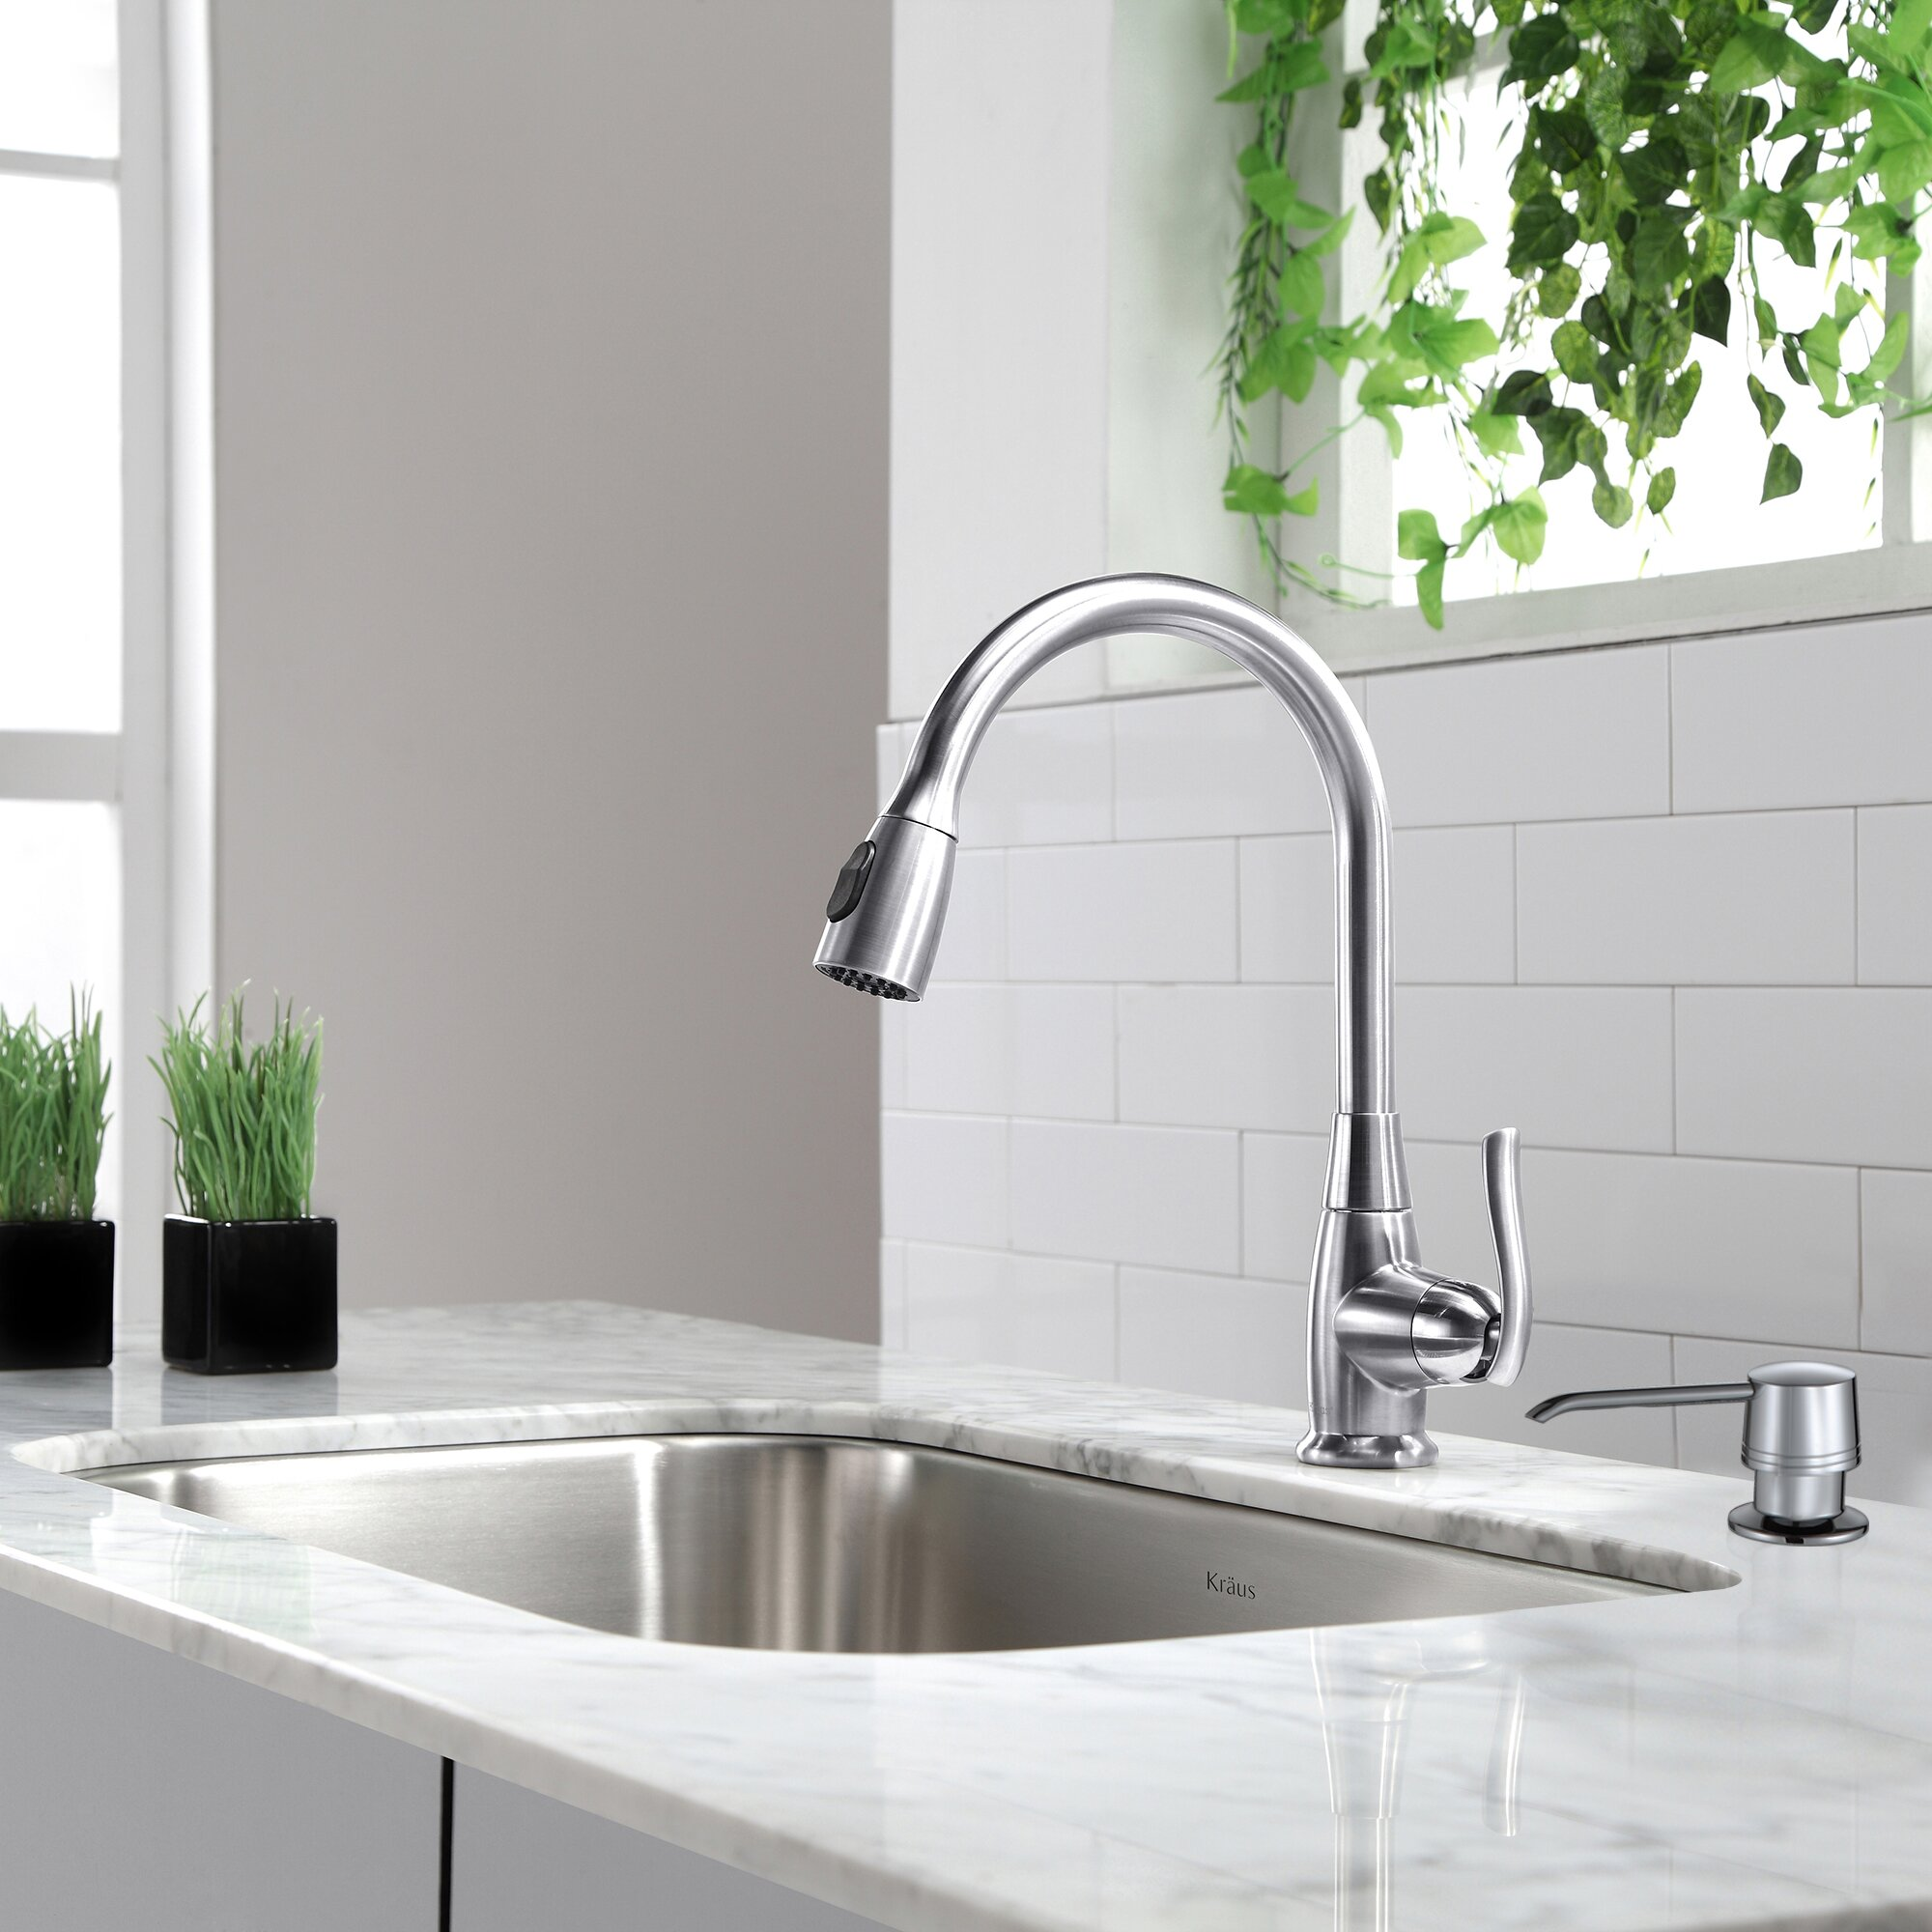 Shop all faucets kitchen faucets bathroom faucets laundry amp bar single - Kraus One Handle Single Hole Kitchen Faucet Reviews Wayfair Kraus One Handle Single Hole Kitchen Faucet